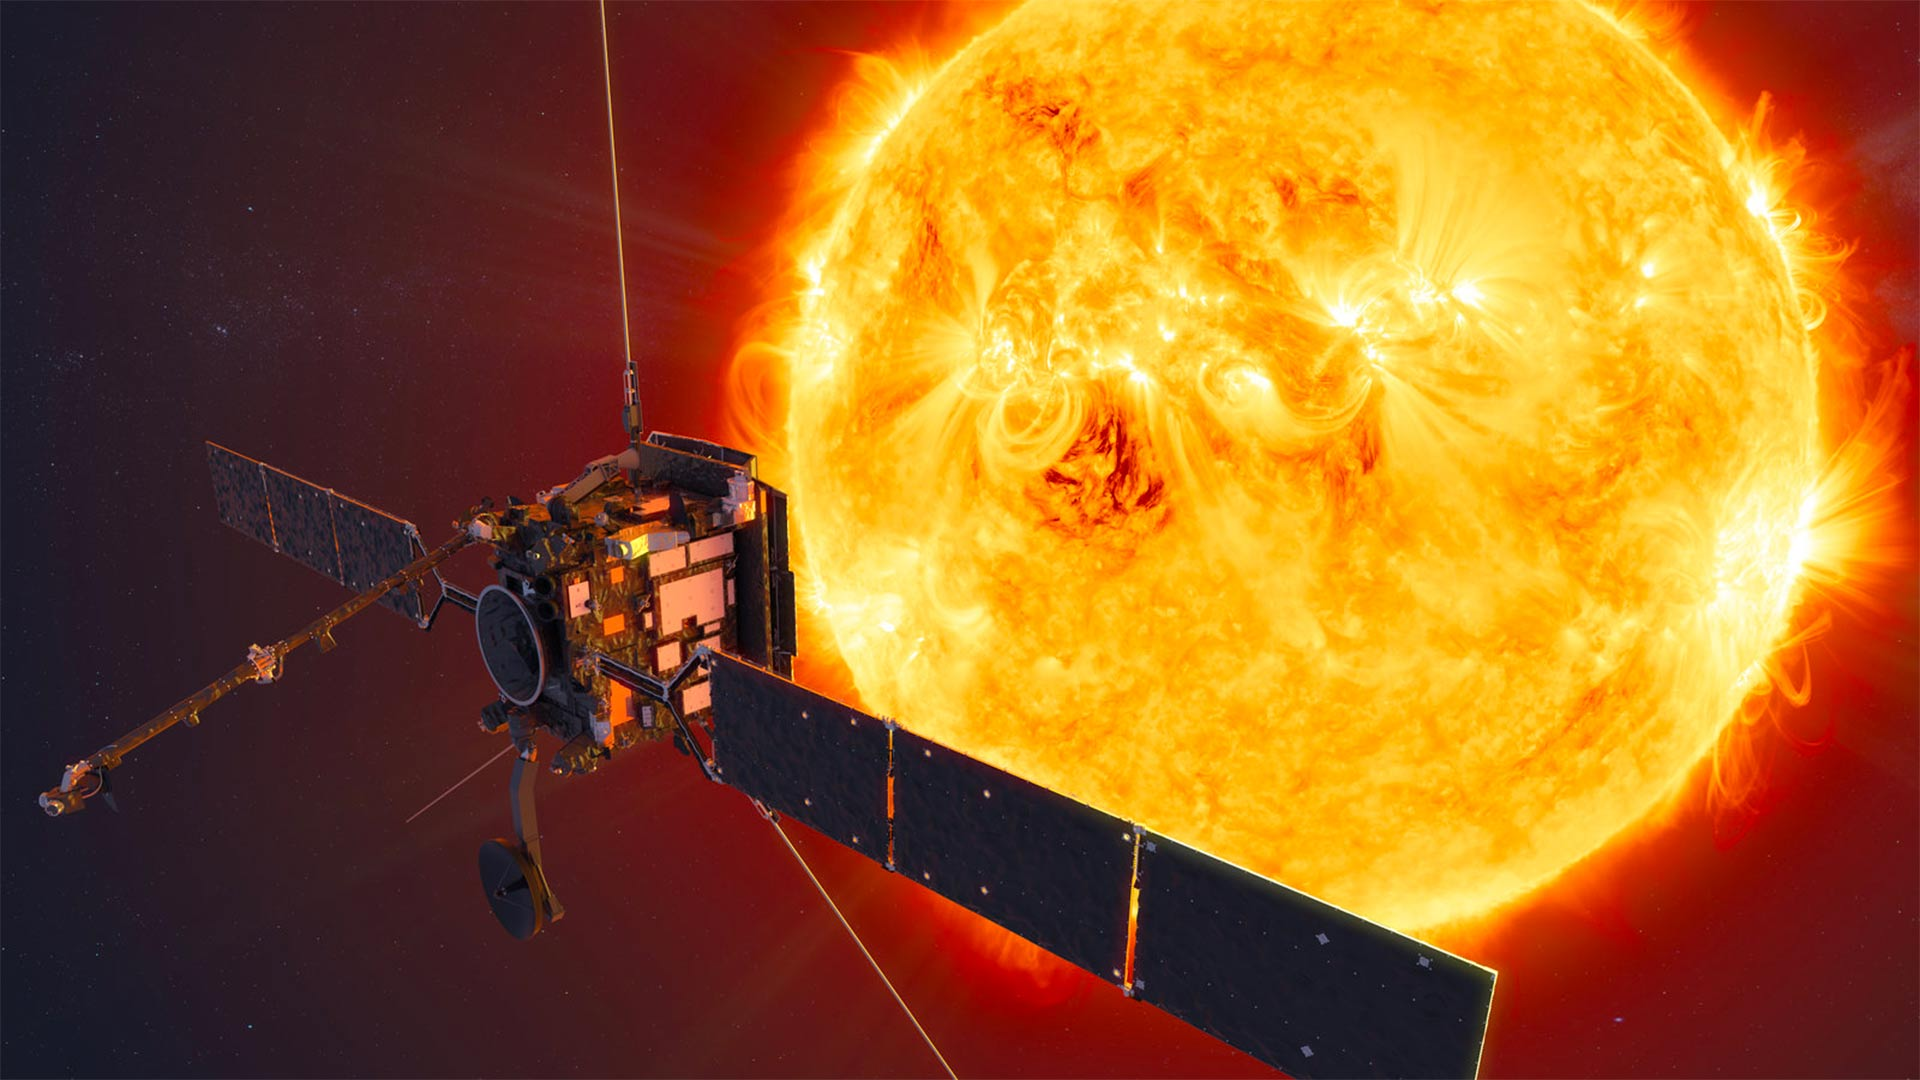 Solar Orbiter, seen in this artistic rendering, is a collaboration between the European Space Agency and NASA to study the sun and what drives the solar wind that creates space weather that affects Earth.